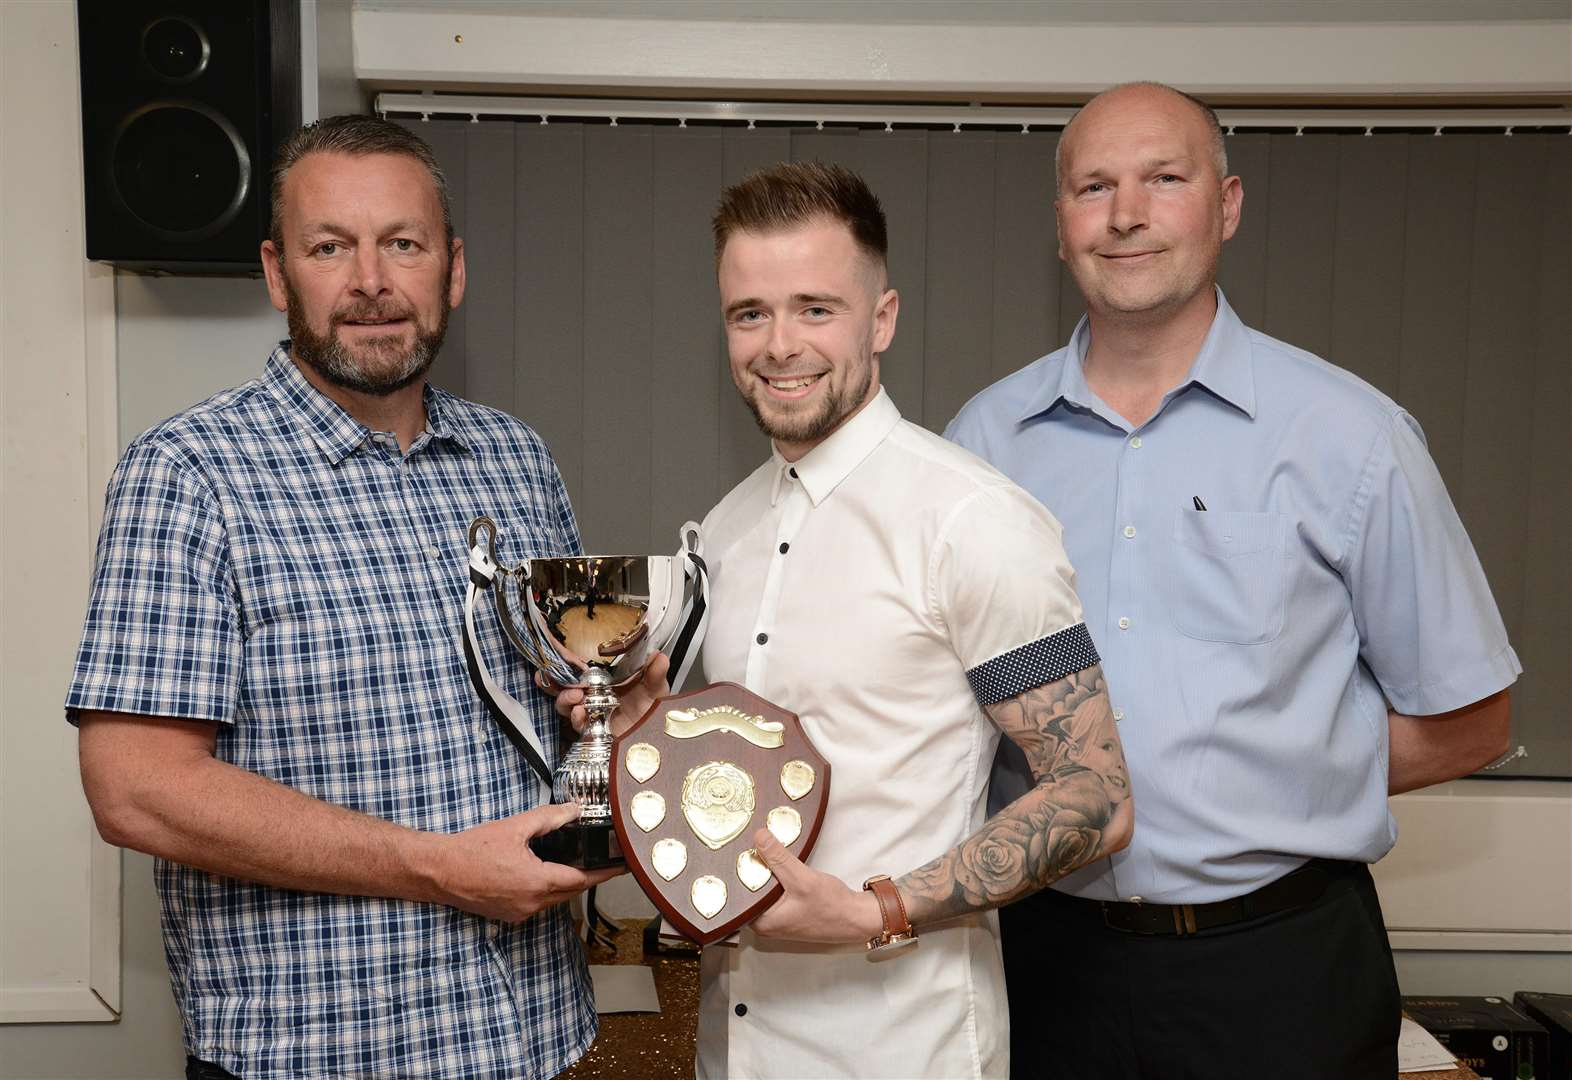 Grantham Town annual awards presentation